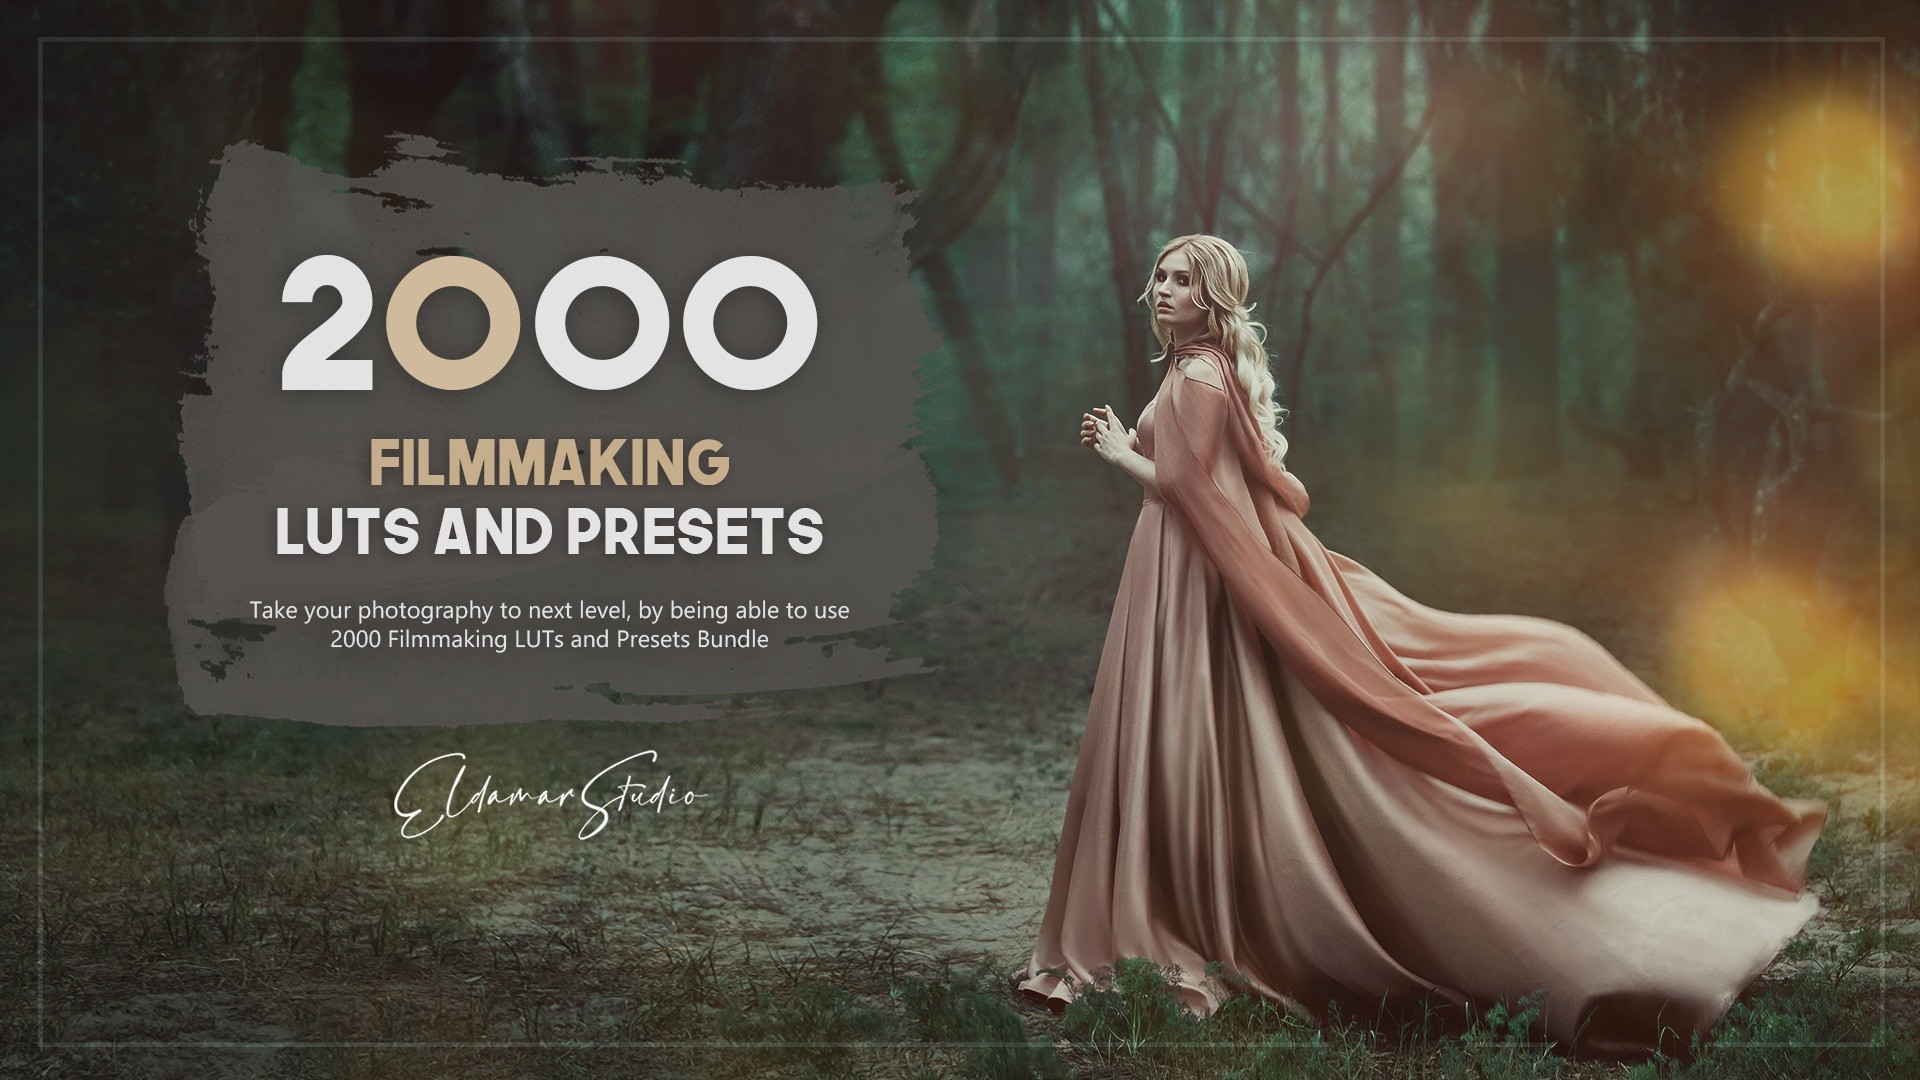 AppSumo Deal for 2000 Filmmaking LUTs and Presets Bundle